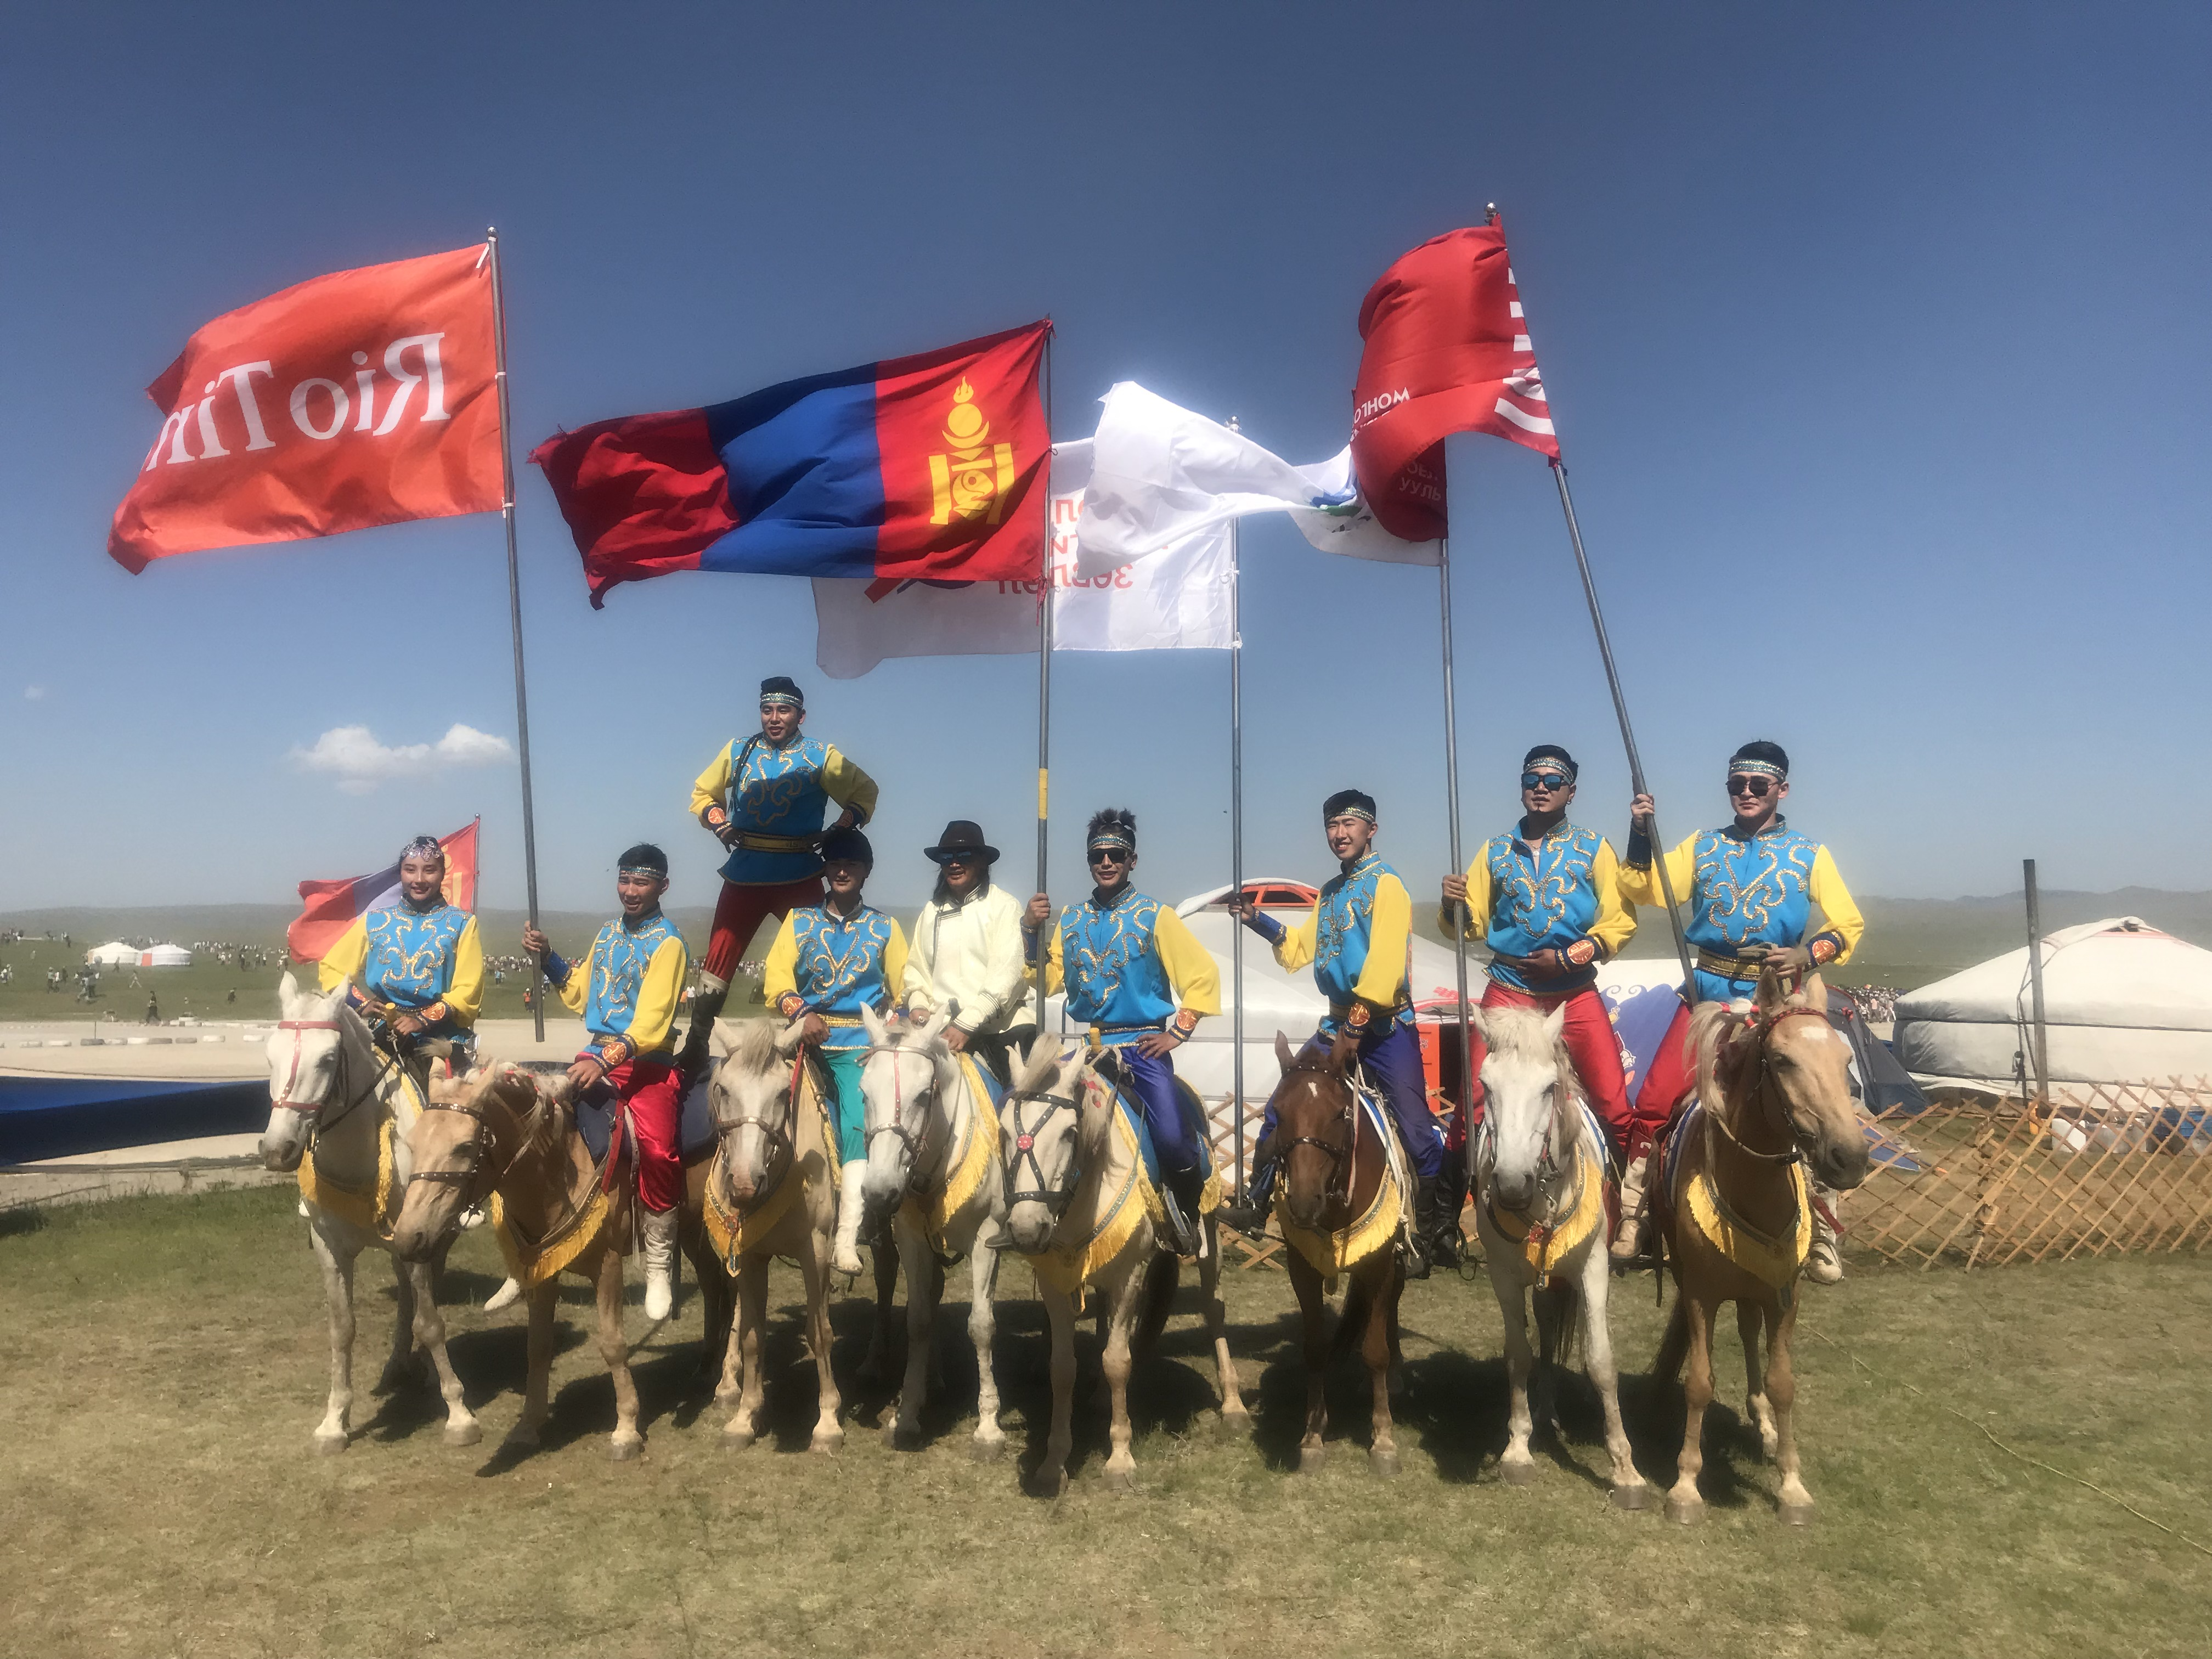 A group of Mongolian riders pose after a Mongol horse race.